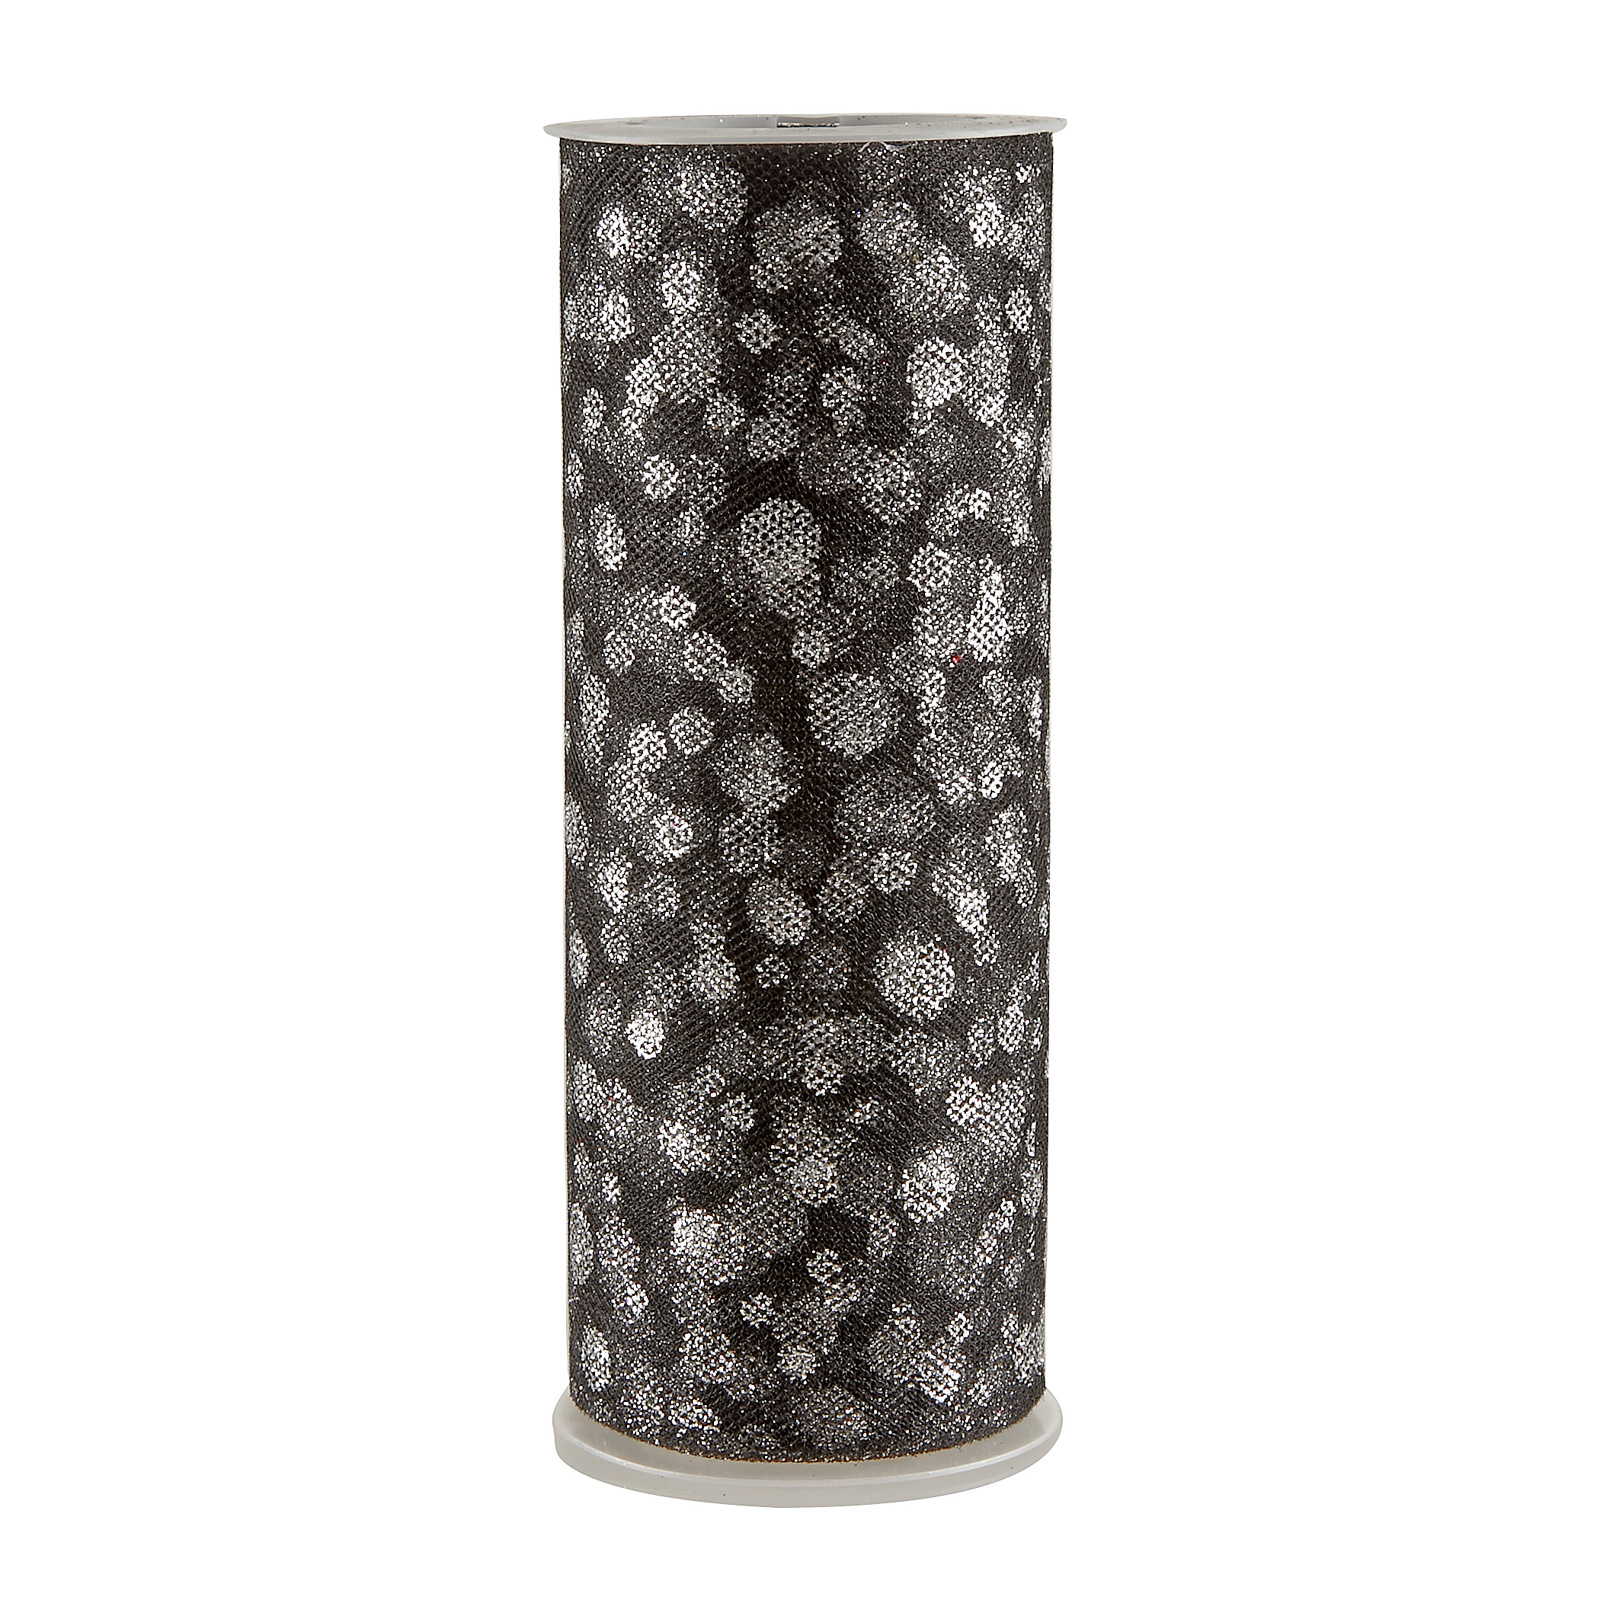 Tulle Spool Glitter Dots Black/Silver Fabric